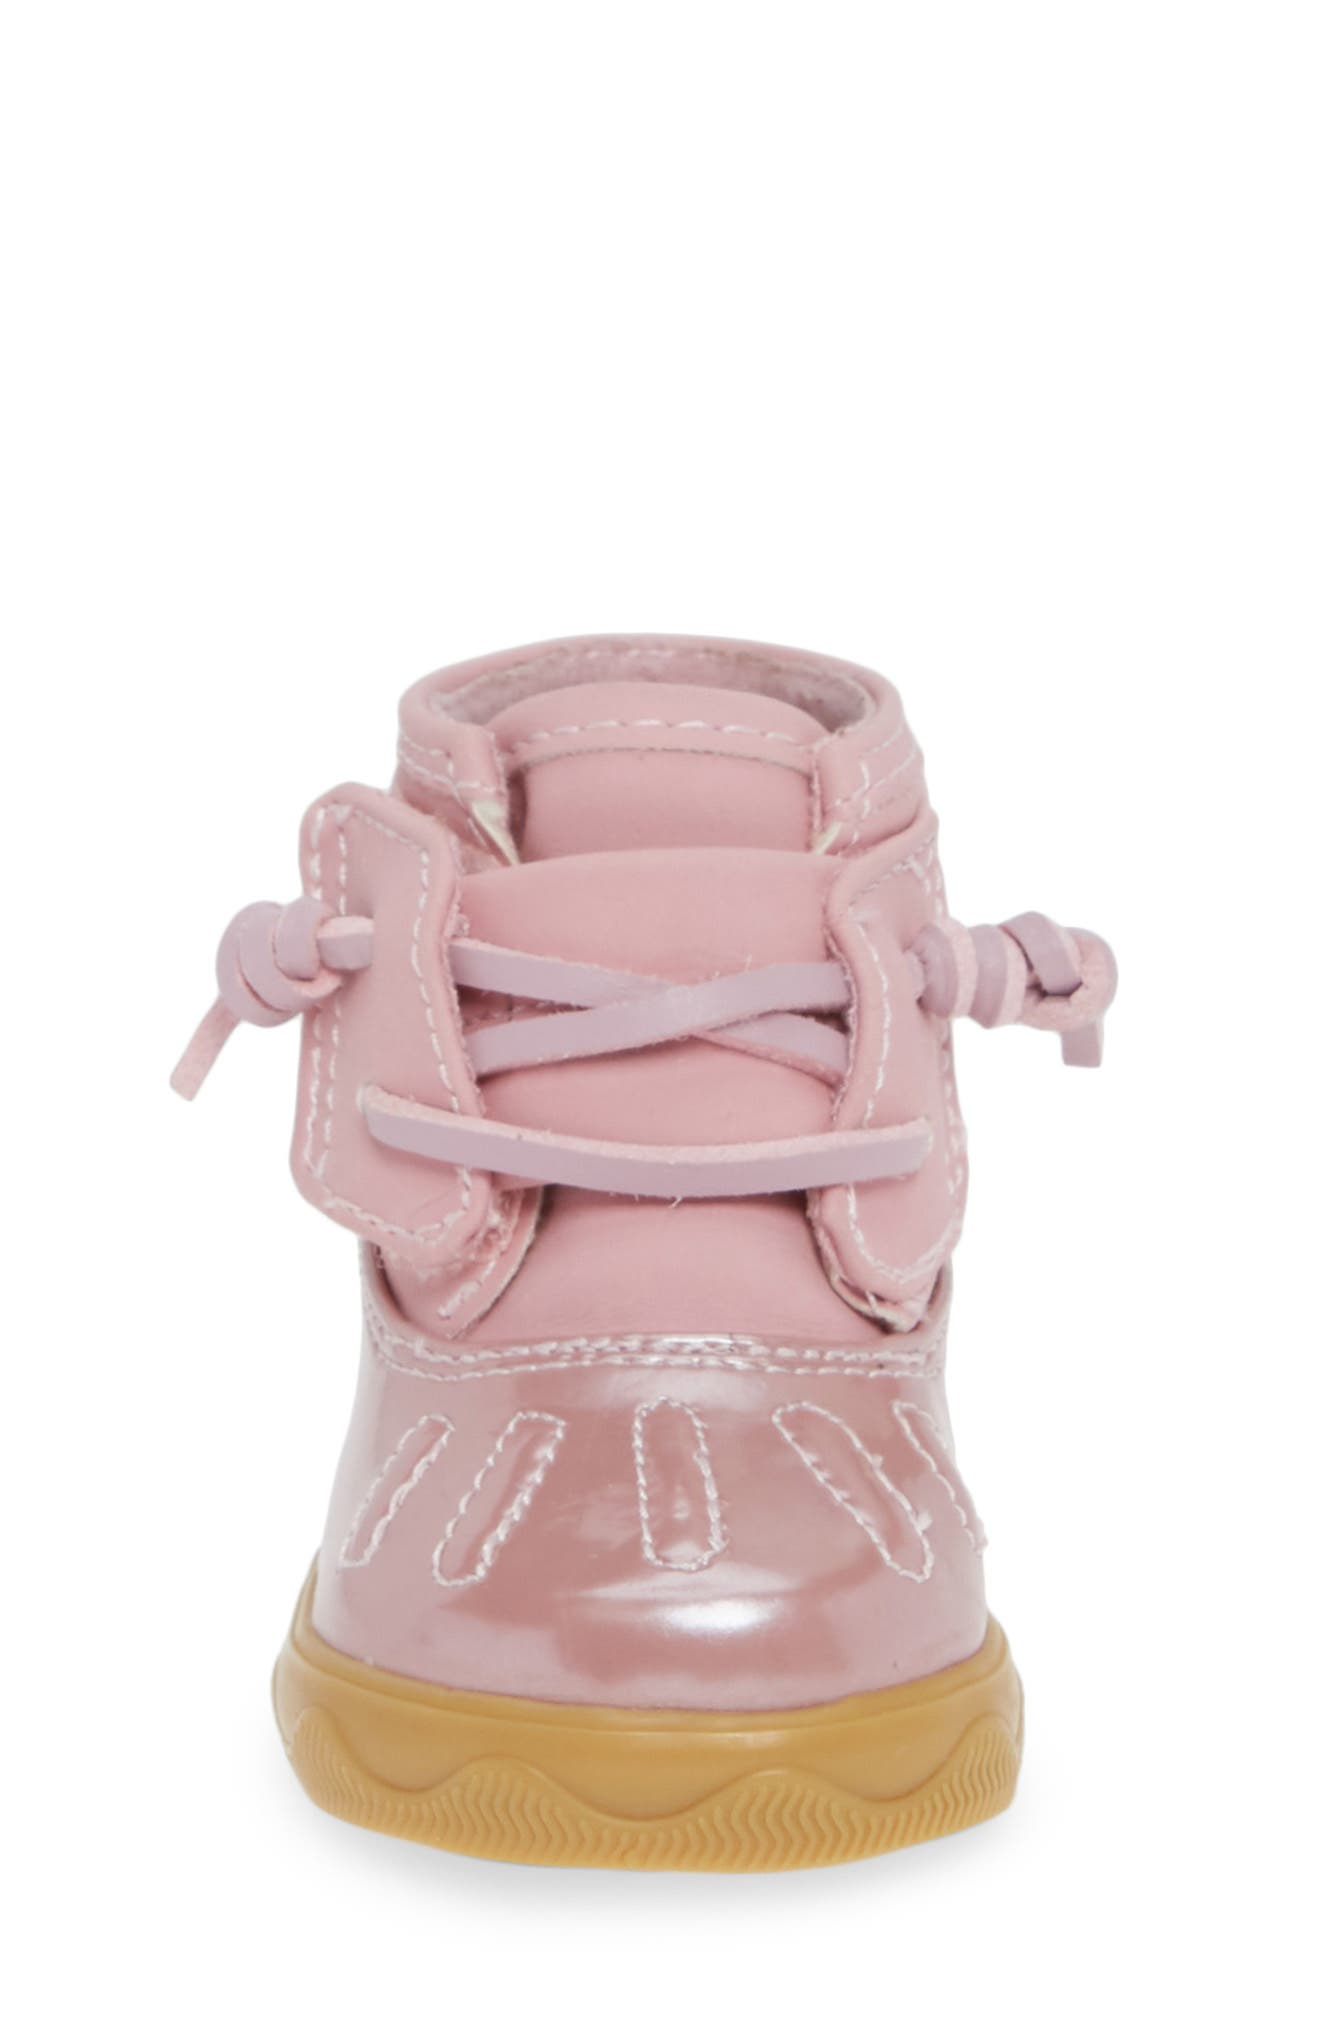 Sperry Icestorm Crib Duck Bootie,                             Alternate thumbnail 4, color,                             650